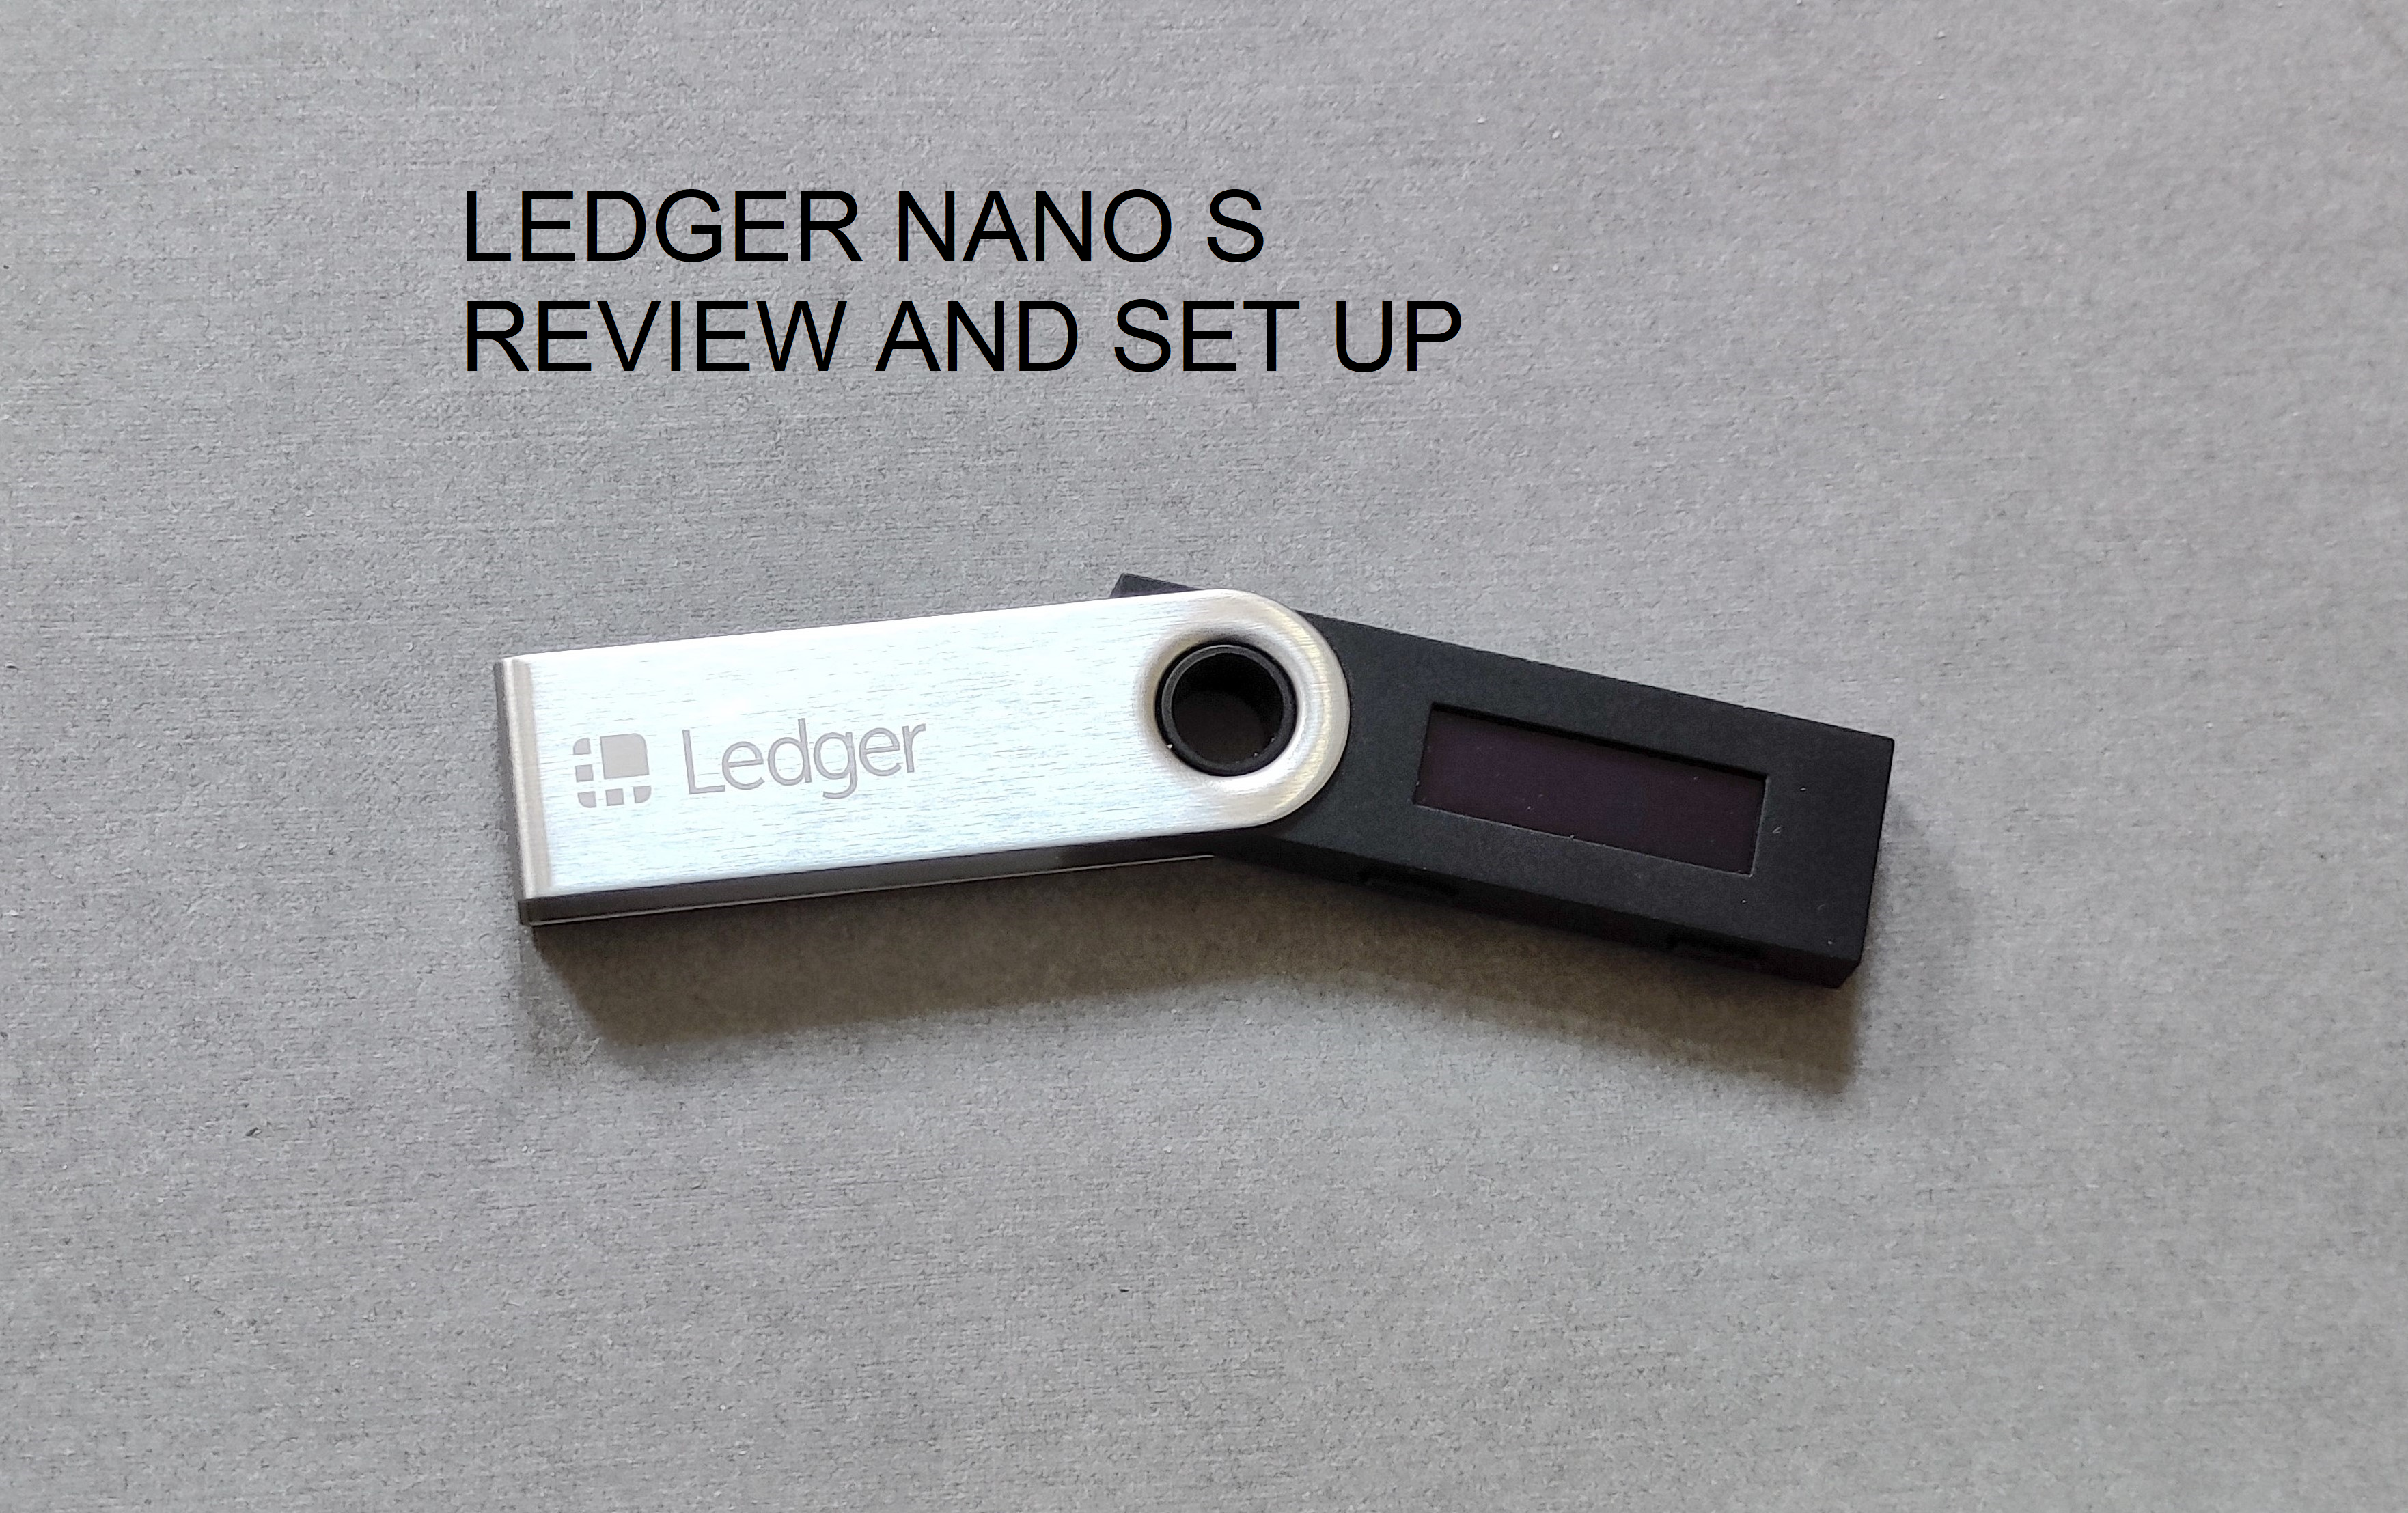 Ledger Nano S Review Set Up and Complete Guide for Beginners